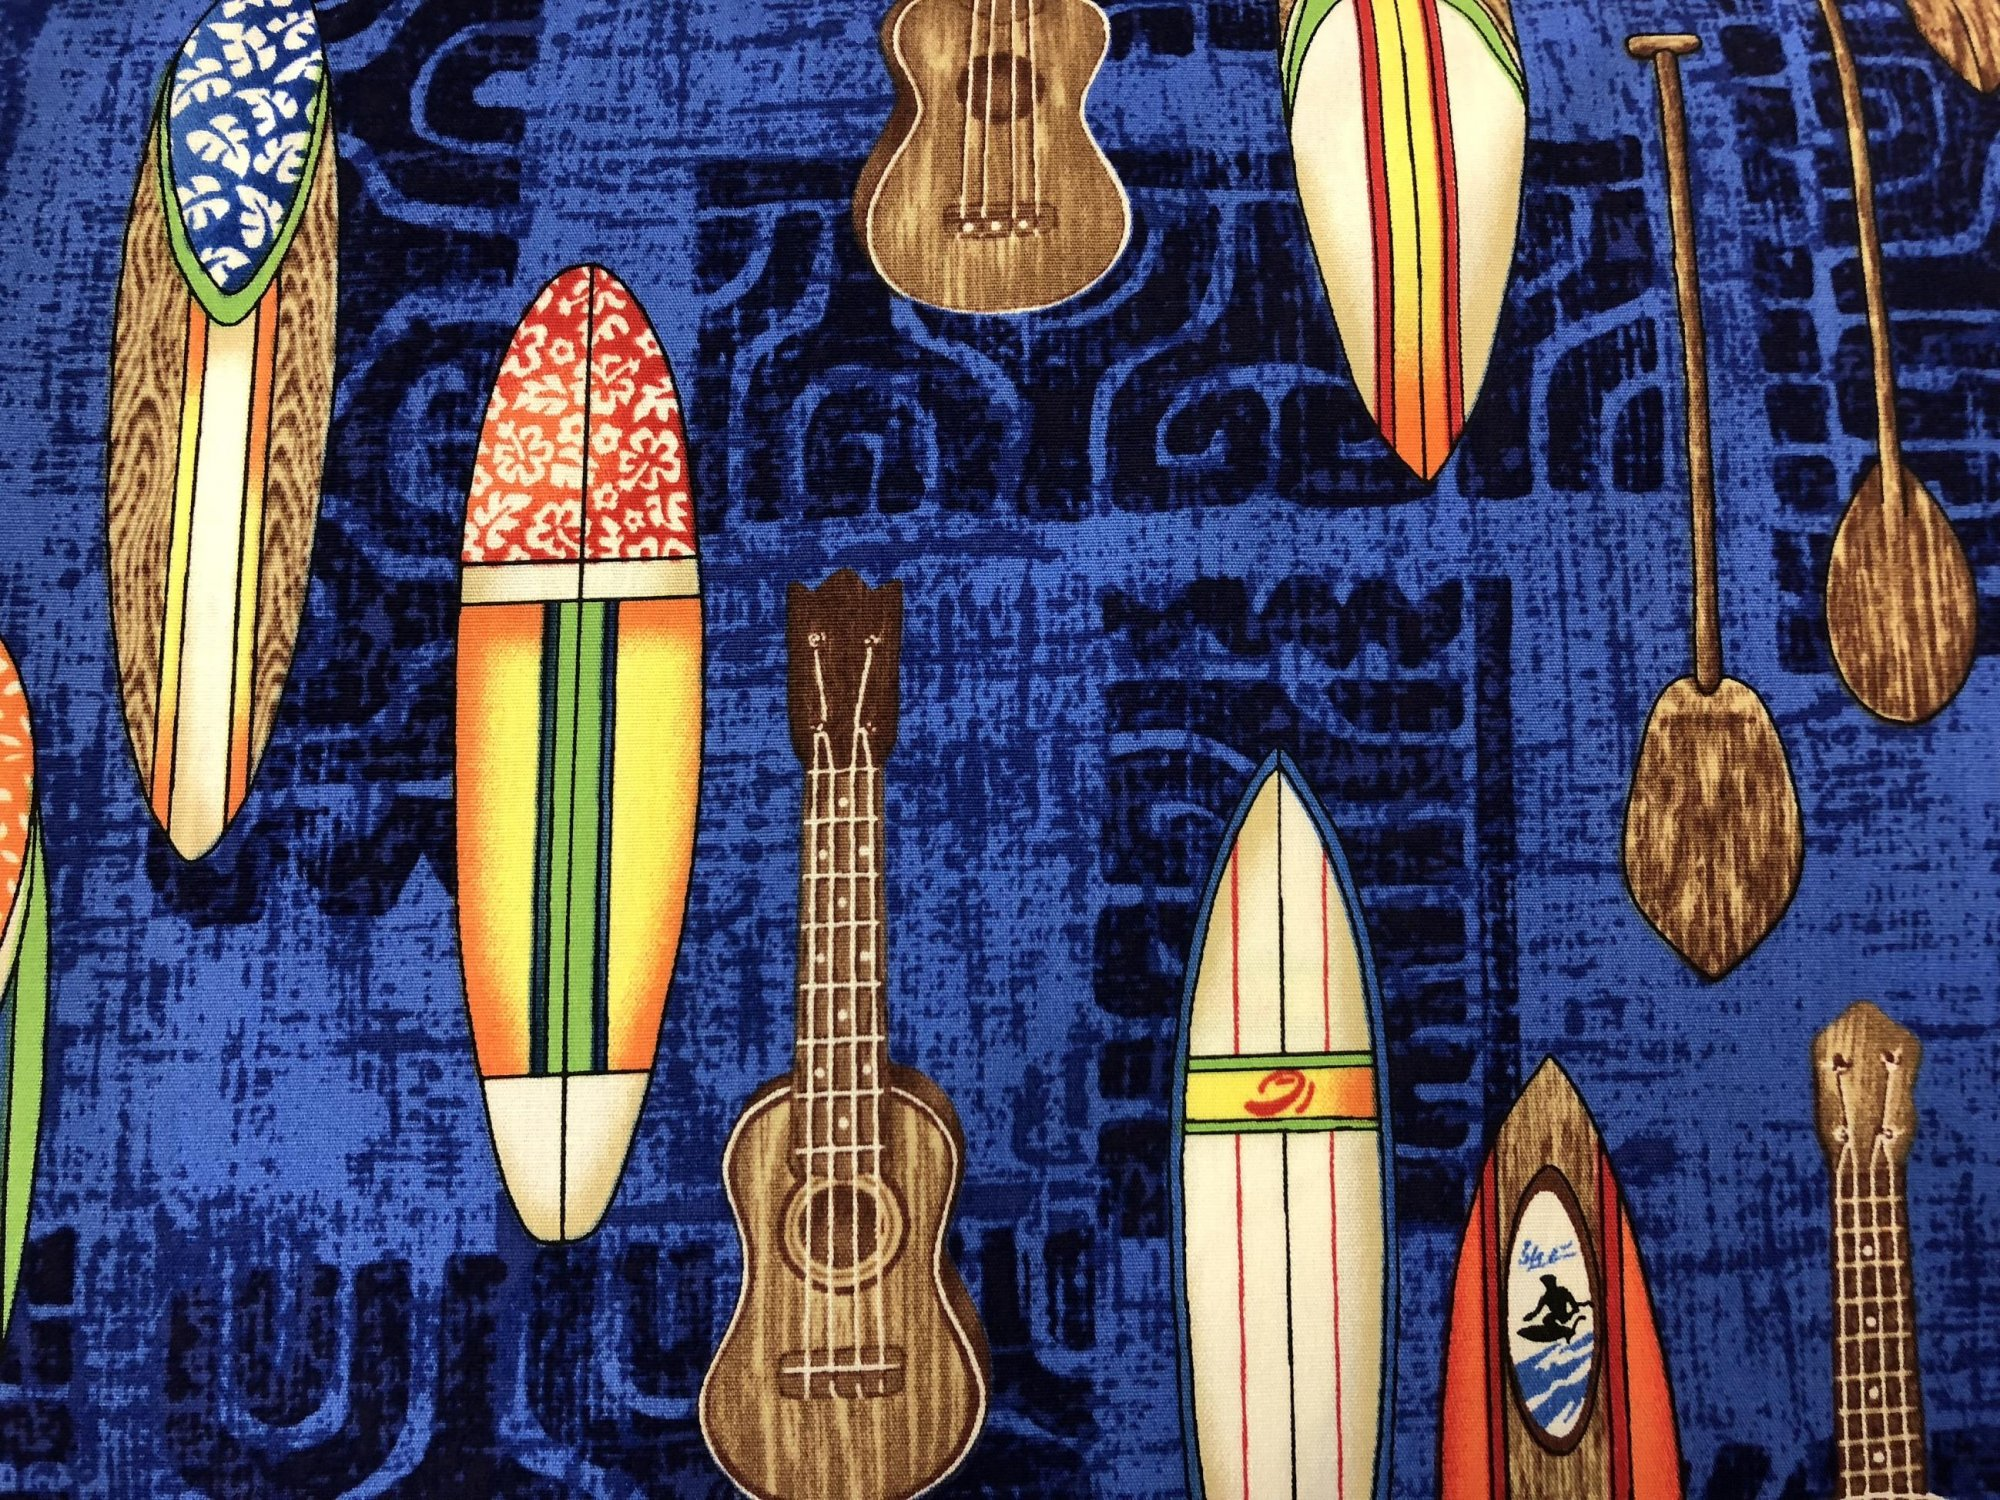 Surfboards and Ukuleles